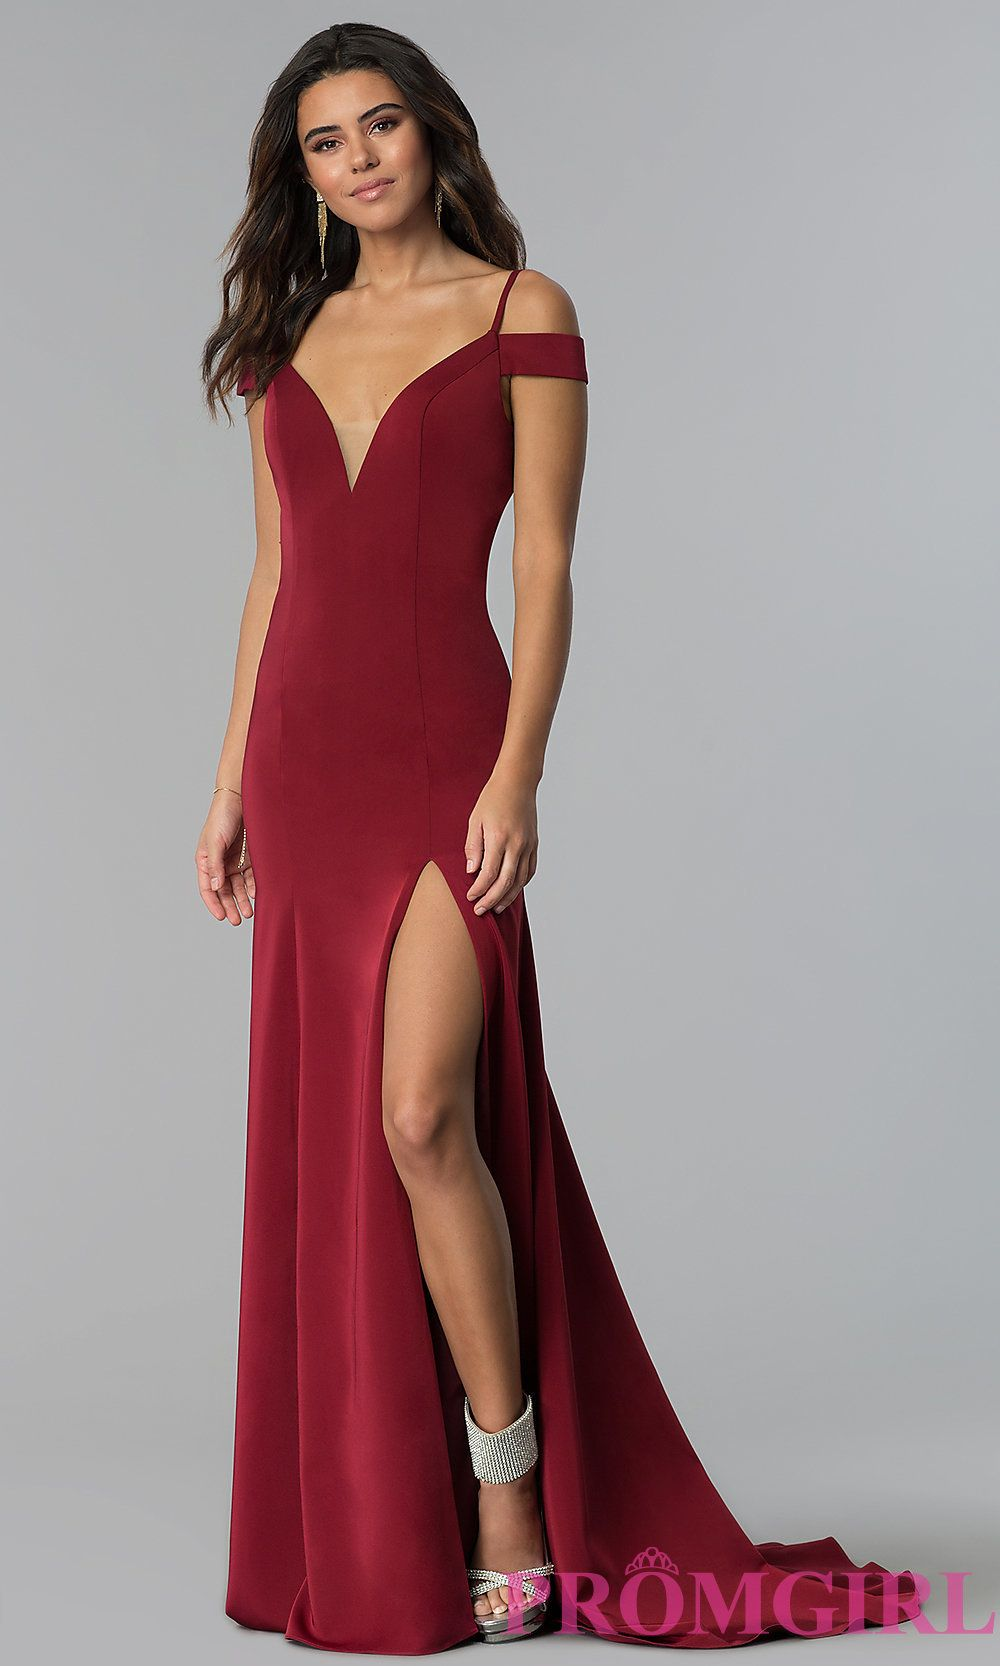 c3296e933 Long Off-the-Shoulder Prom Dress with Straps | Dress | Prom dresses ...